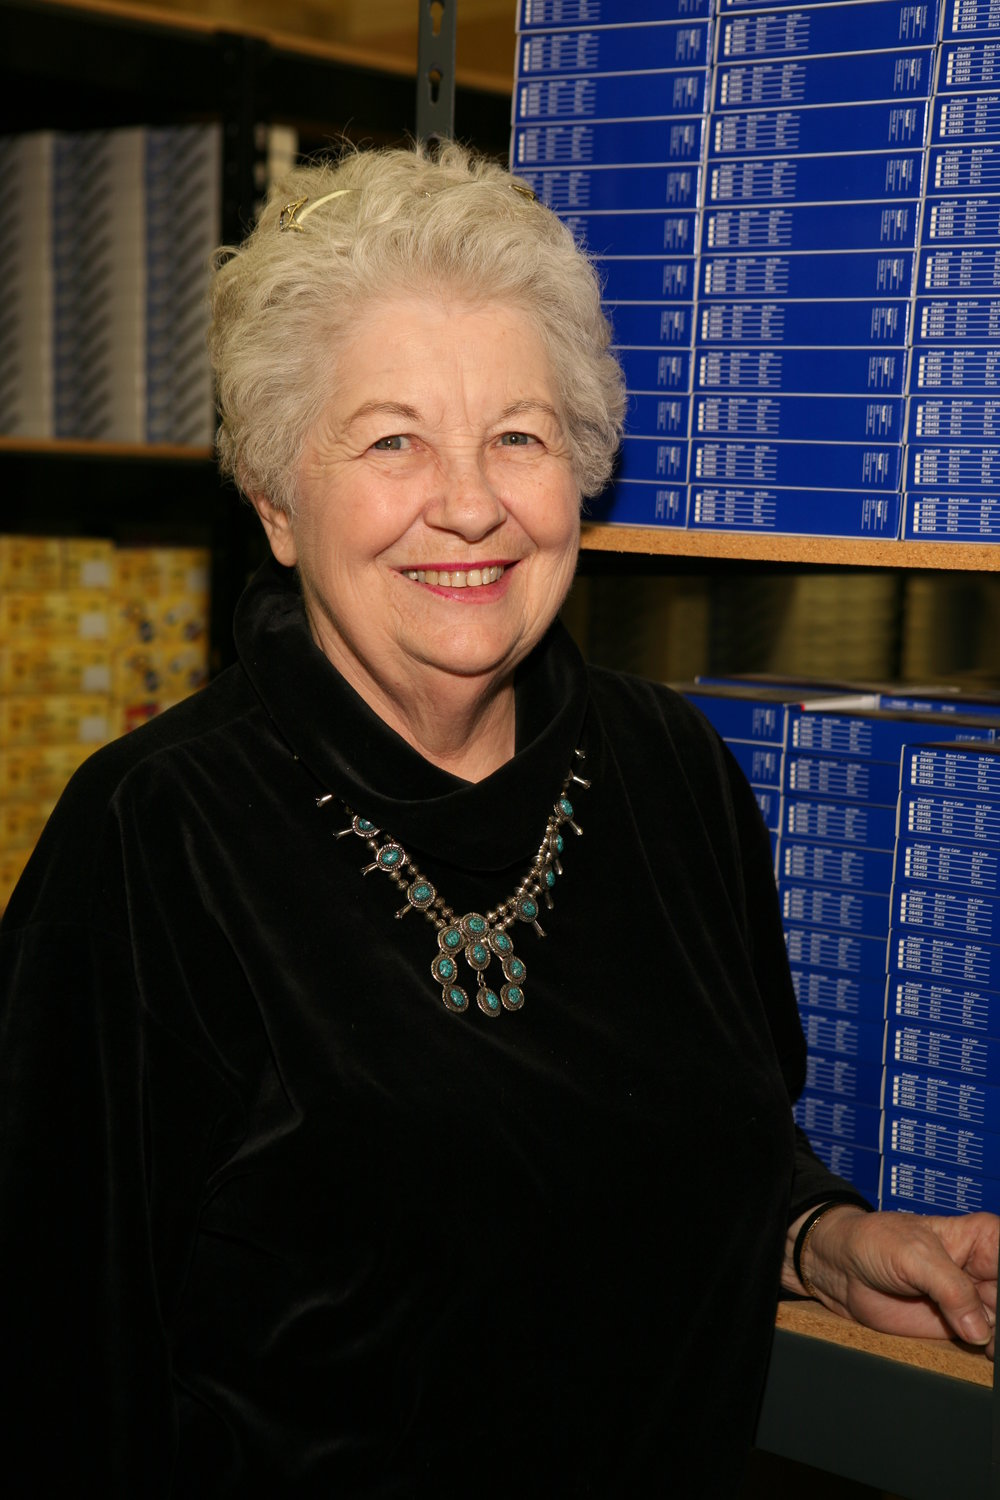 Our Founder, Barbara Roos Brennan